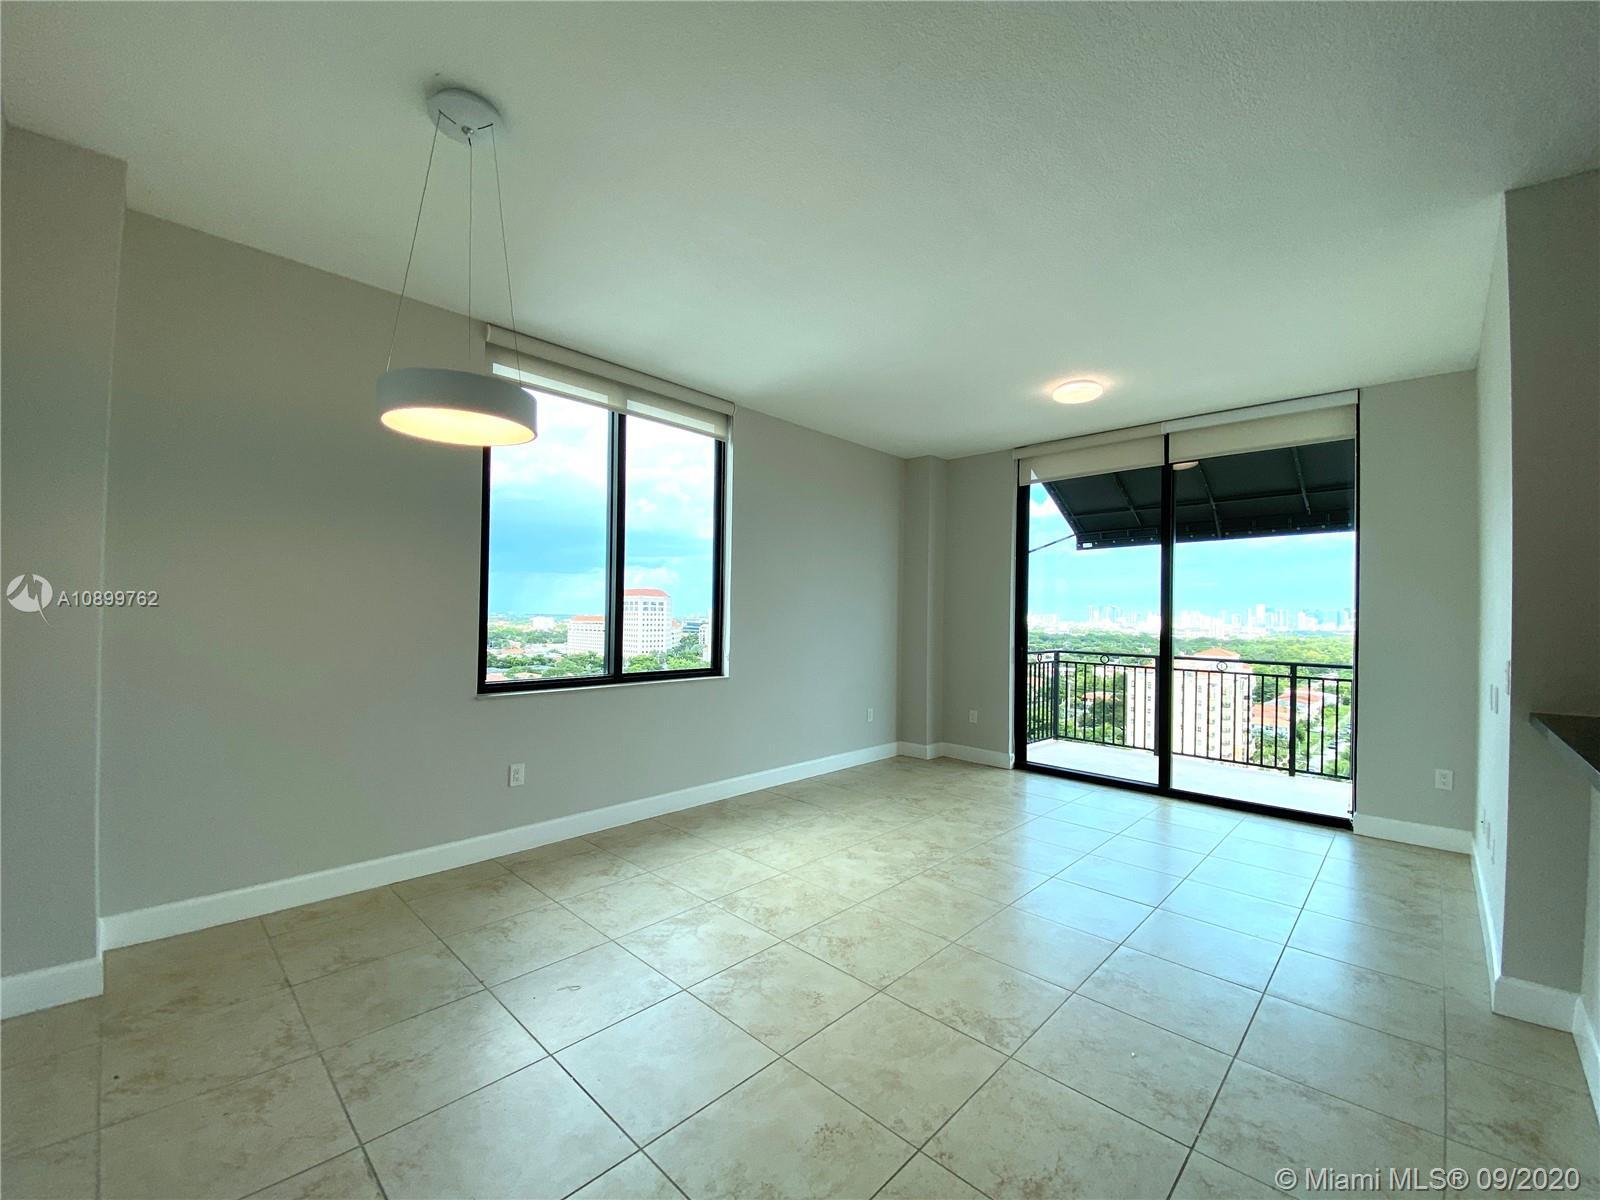 Unique corner Penthouse Unit at luxurious 1300 Ponce. This is a 2bed 2.5 bathroom with DOUBLE HEIGHT CEILINGS as well as double balconies featuring unbeatable views east of downtown and south/ west of the Gables. Each bedroom has its own ensuite bathroom with dual sinks and separate tub & shower. Unit also includes high end granite countertops, italian cabinets and walk-in closets as well as stainless steel appliances. 2 assigned parking spaces included too. Building is full of state of the art amenities including a massive pool and wet deck, modern gym, event room and more.. all located just blocks from all the great dining and shopping in Miracle Mile! Ready to move in and live!